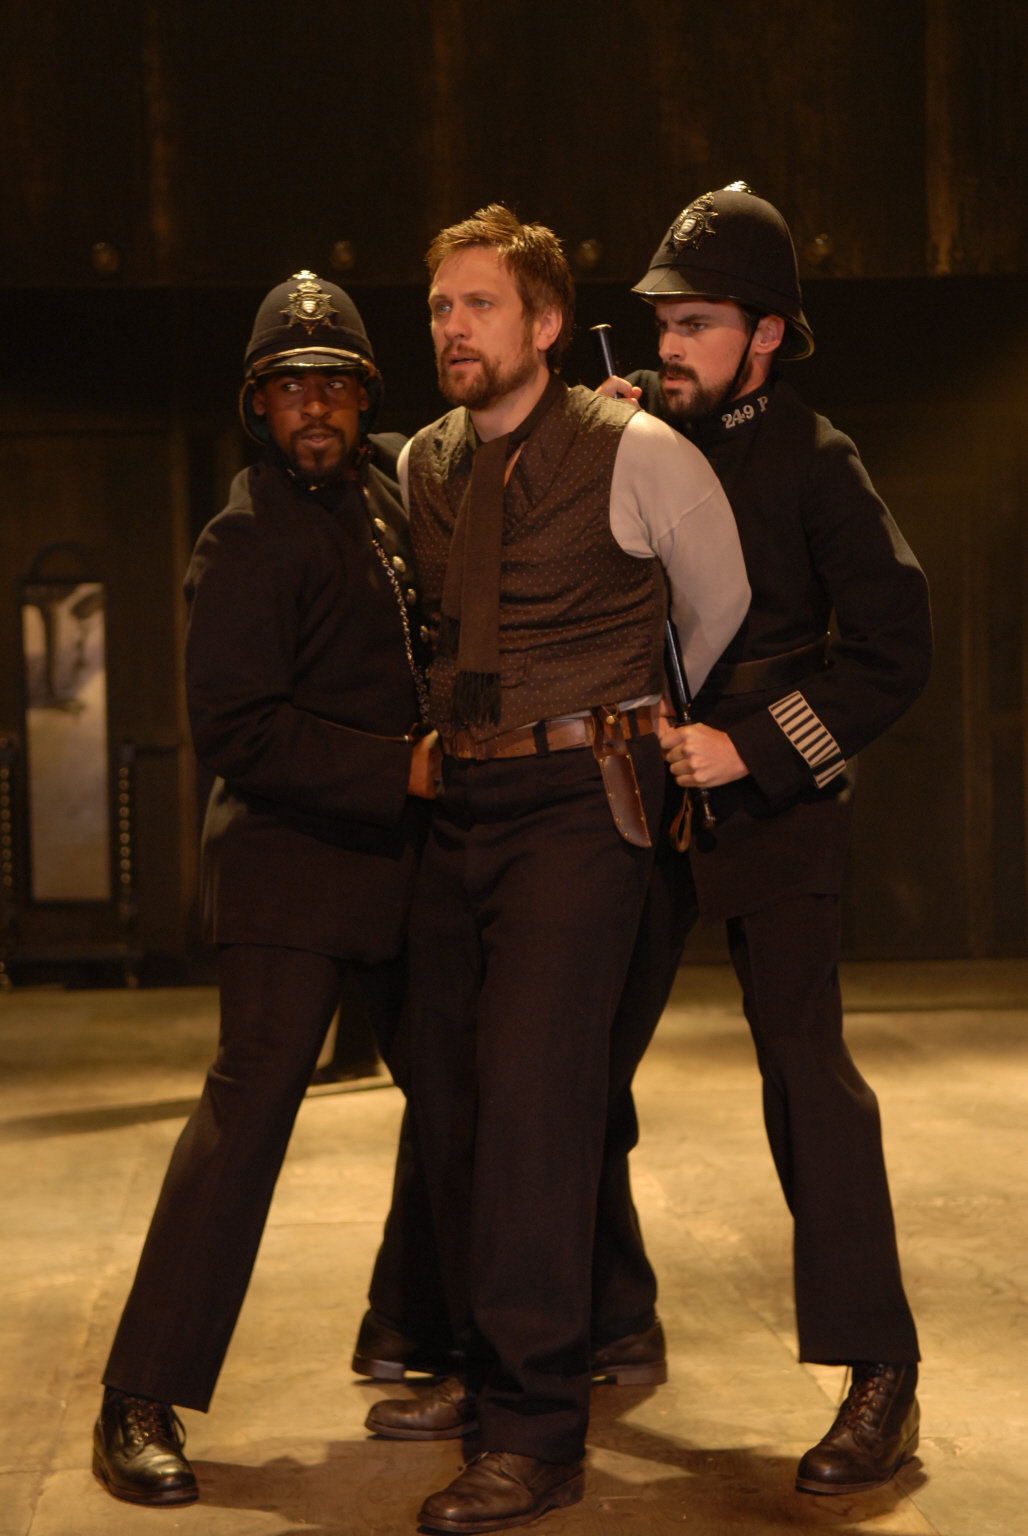 Antonio is arrested by two men dressed as policemen in uniform as he stands and looks surprised in the 2009 production of Twelfth Night.